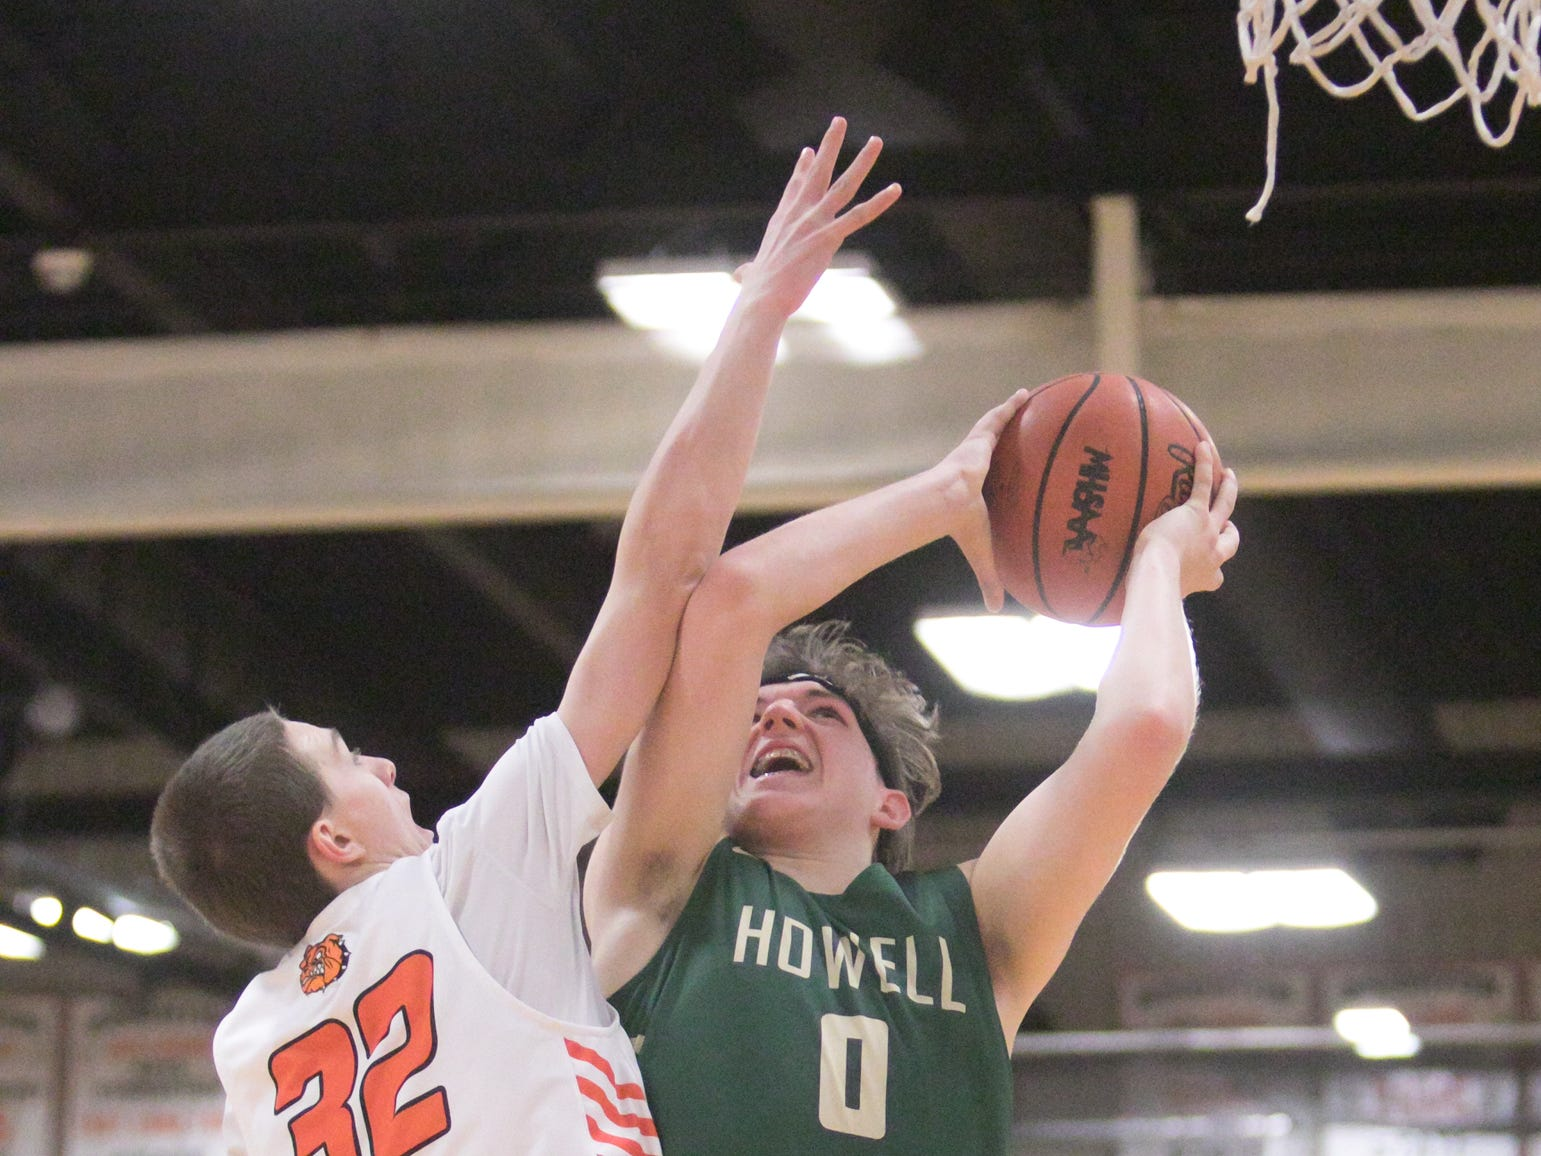 Howell's Josh Palo scores and is fouled by Brighton's Owen Ehman in the fourth quarter of the game at Brighton Tuesday, Jan. 8, 2019